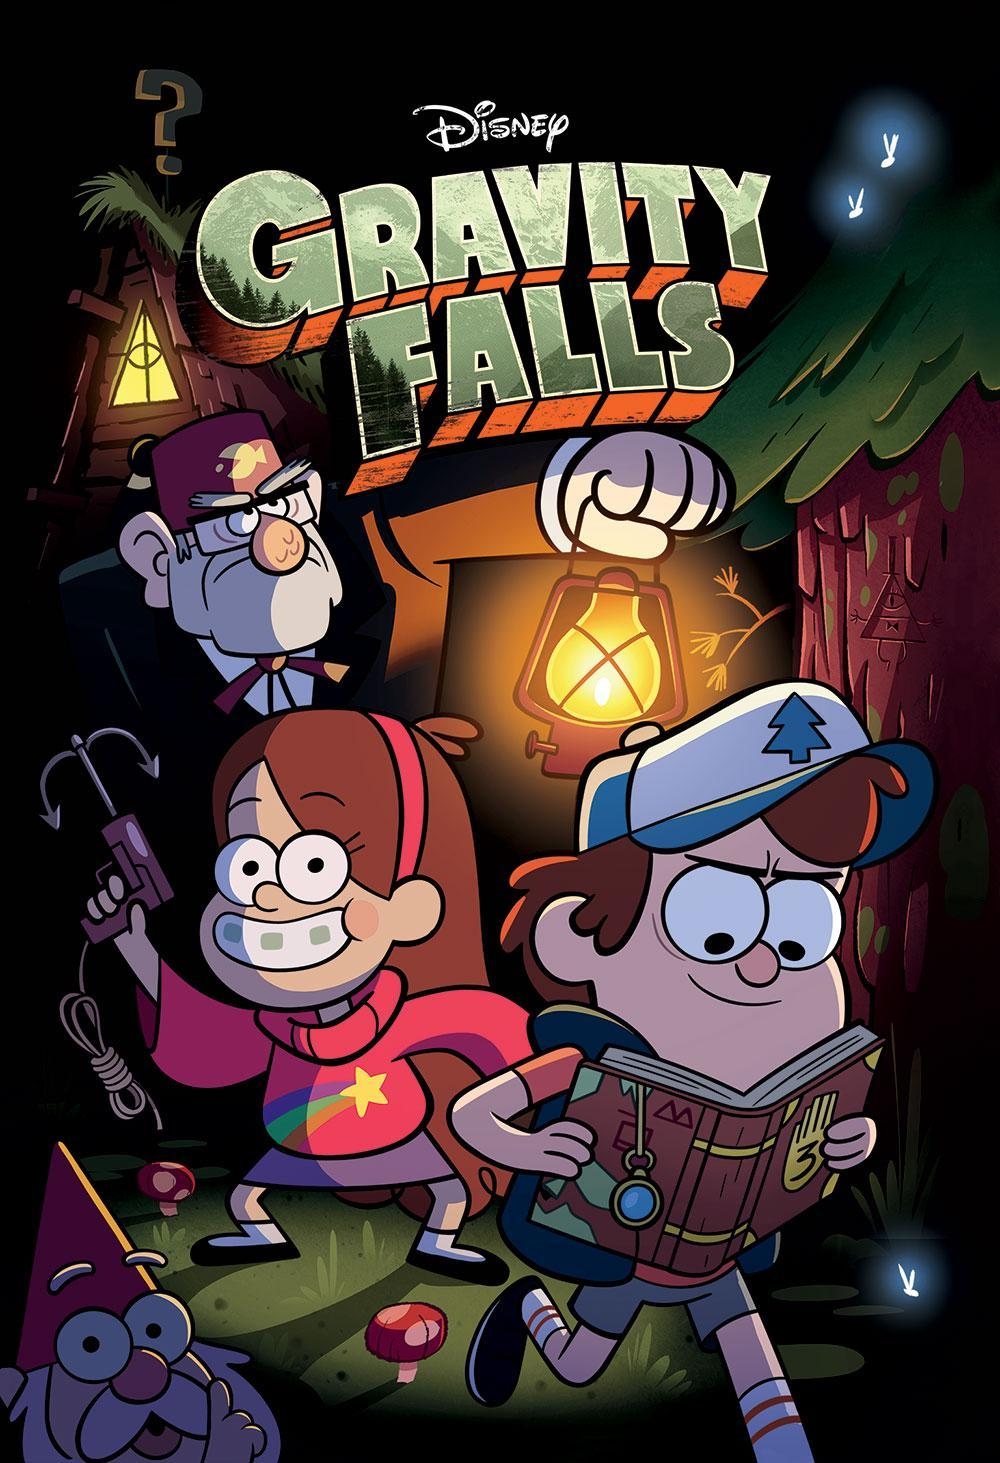 Gravity Falls - How well do you know Gravity Falls? - Season 1